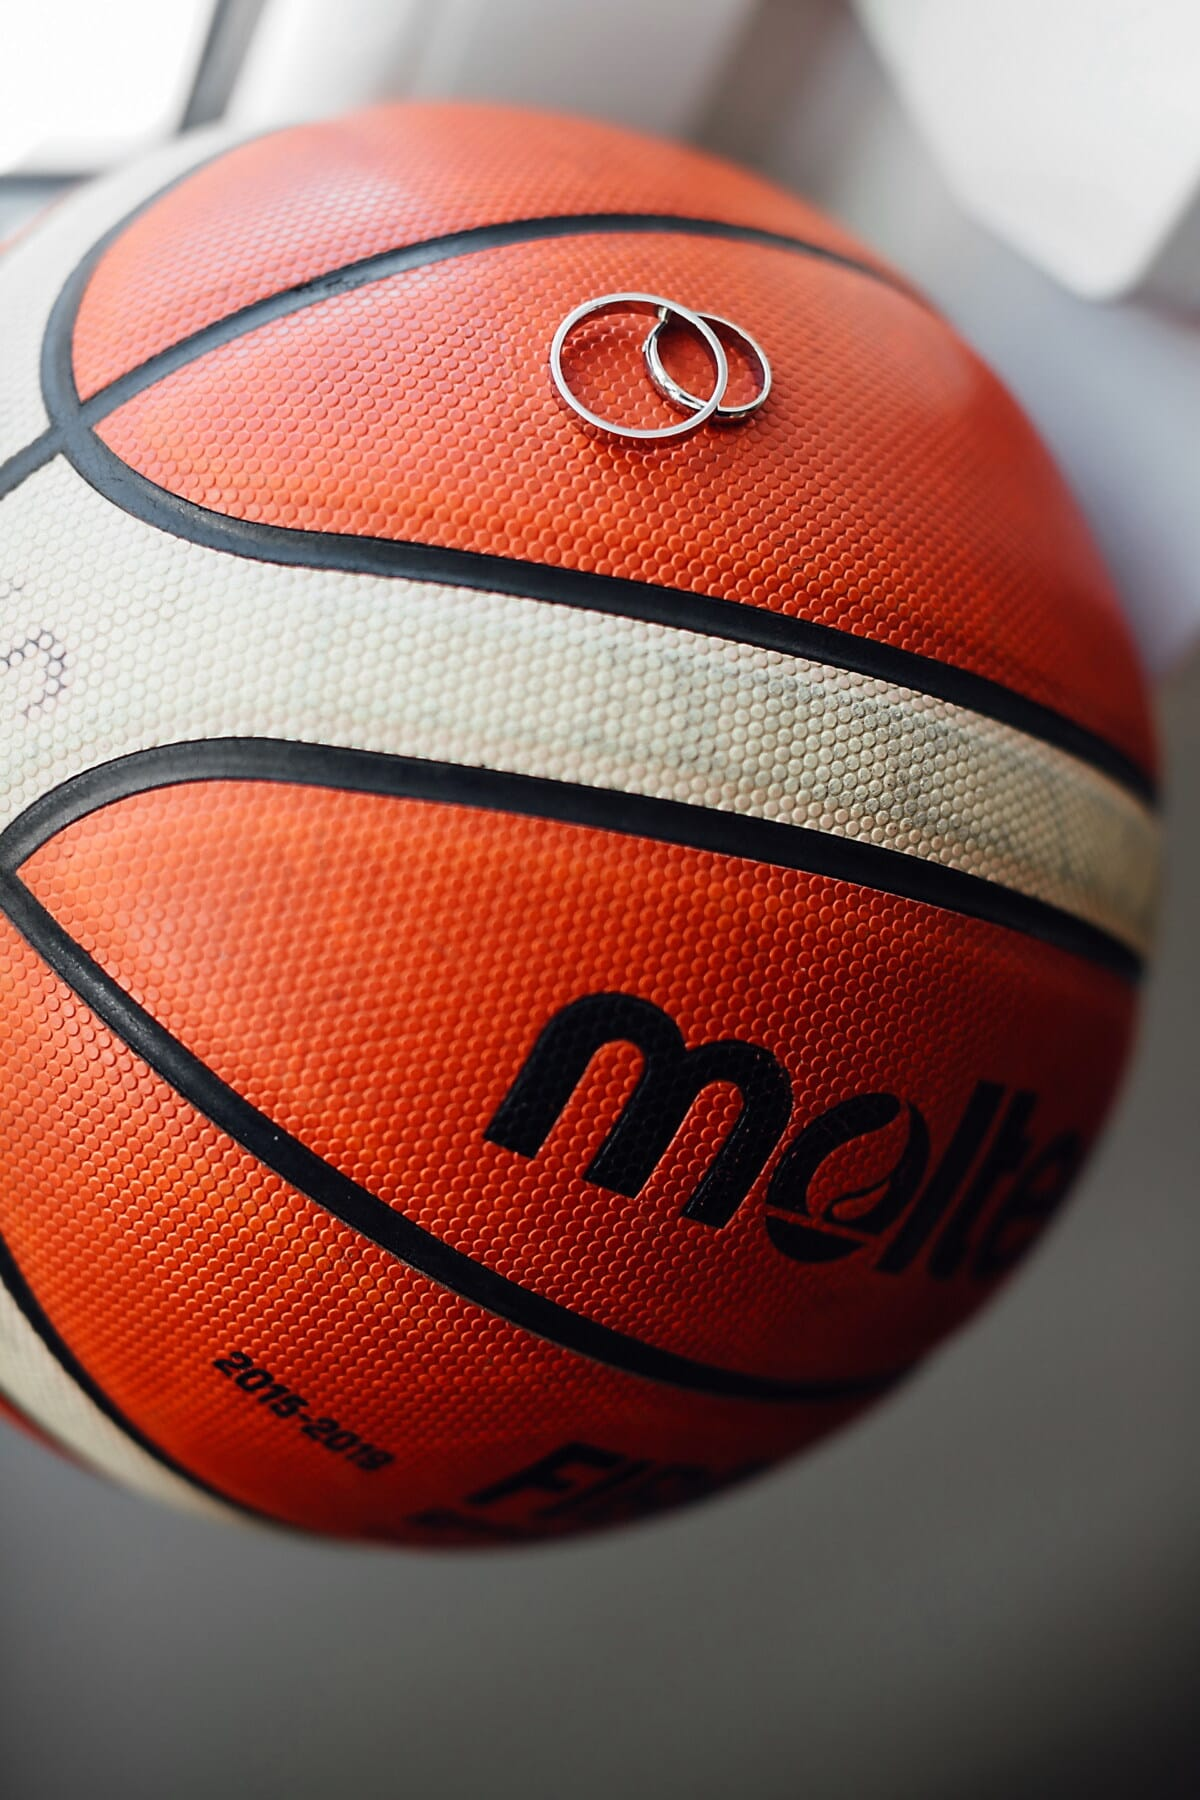 basketball, ball, wedding ring, jewelry, rings, sport, game, competition, leisure, indoors